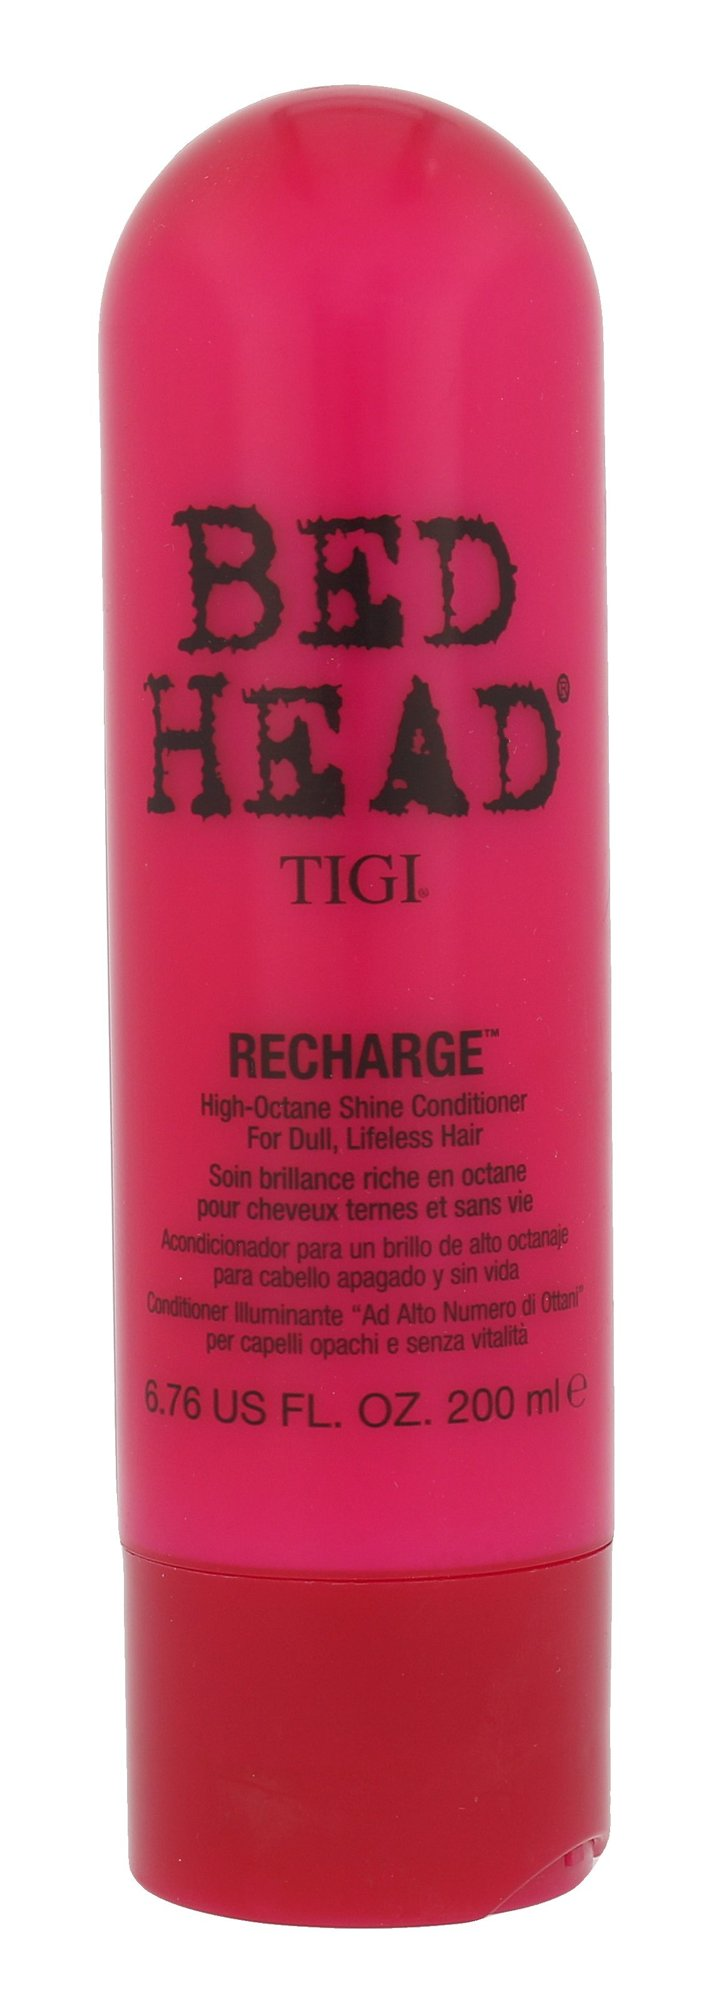 Tigi Bed Head Recharge Cosmetic 200ml